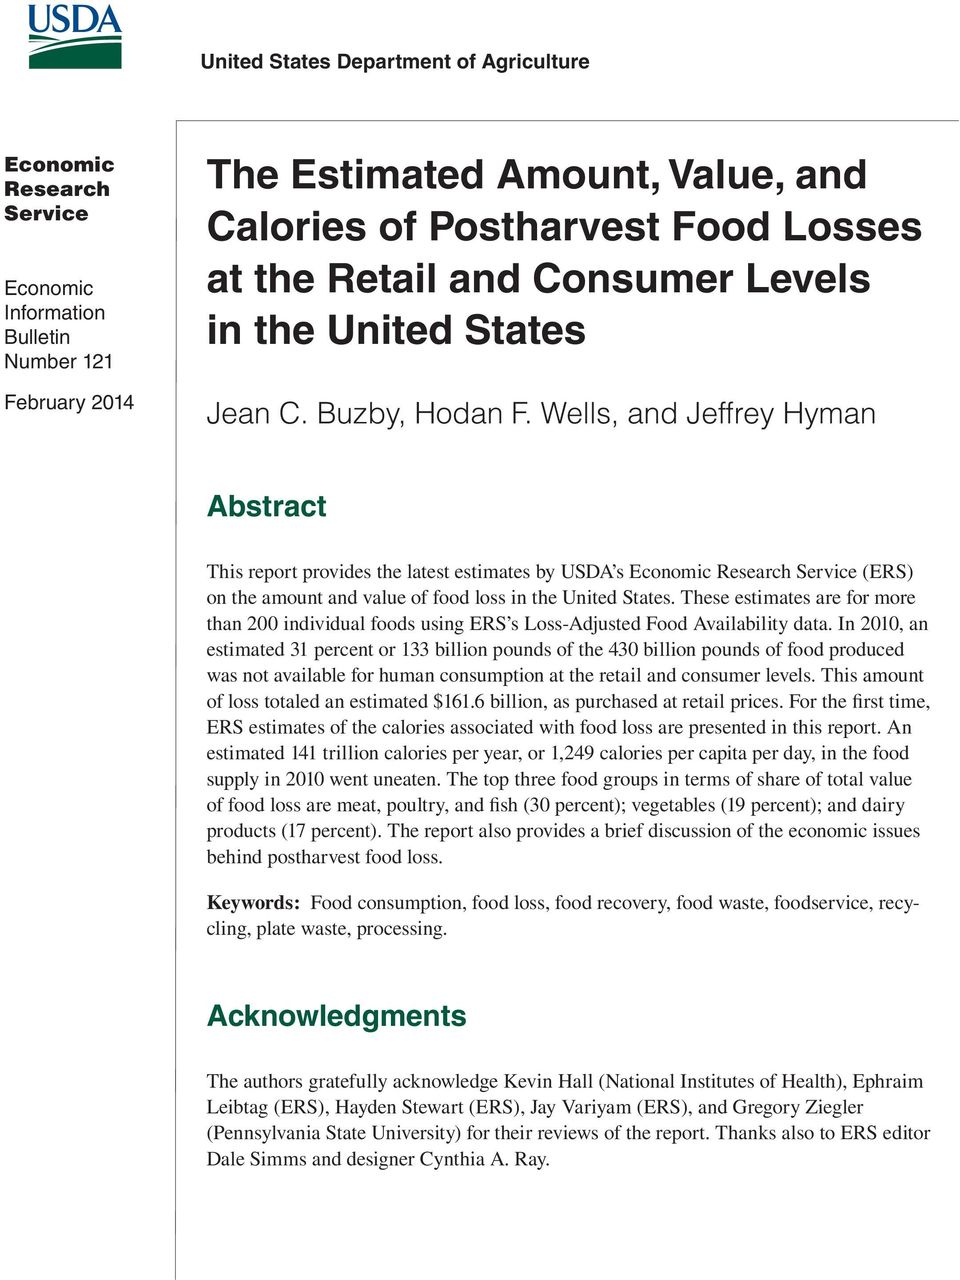 Wells, and Jeffrey Hyman Abstract This report provides the latest estimates by USDA s Economic Research Service (ERS) on the amount and value of food loss in the United States.